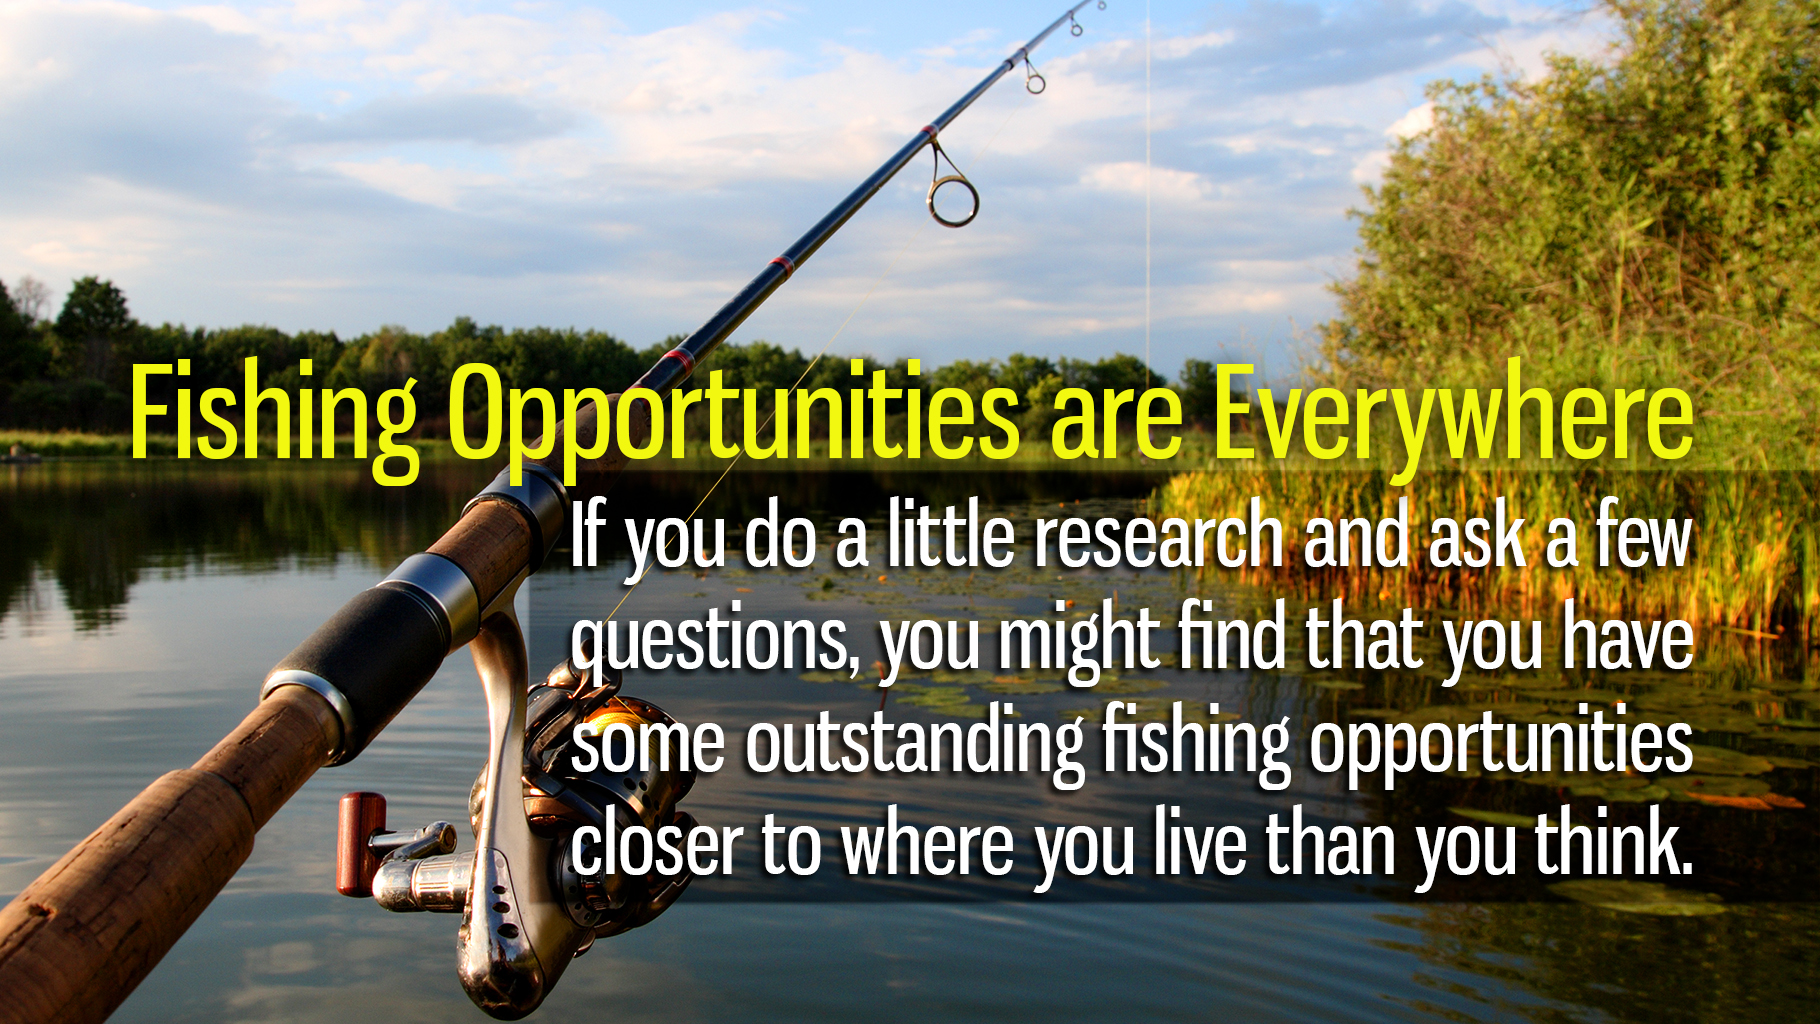 Fishing Opportunities are Everywhere